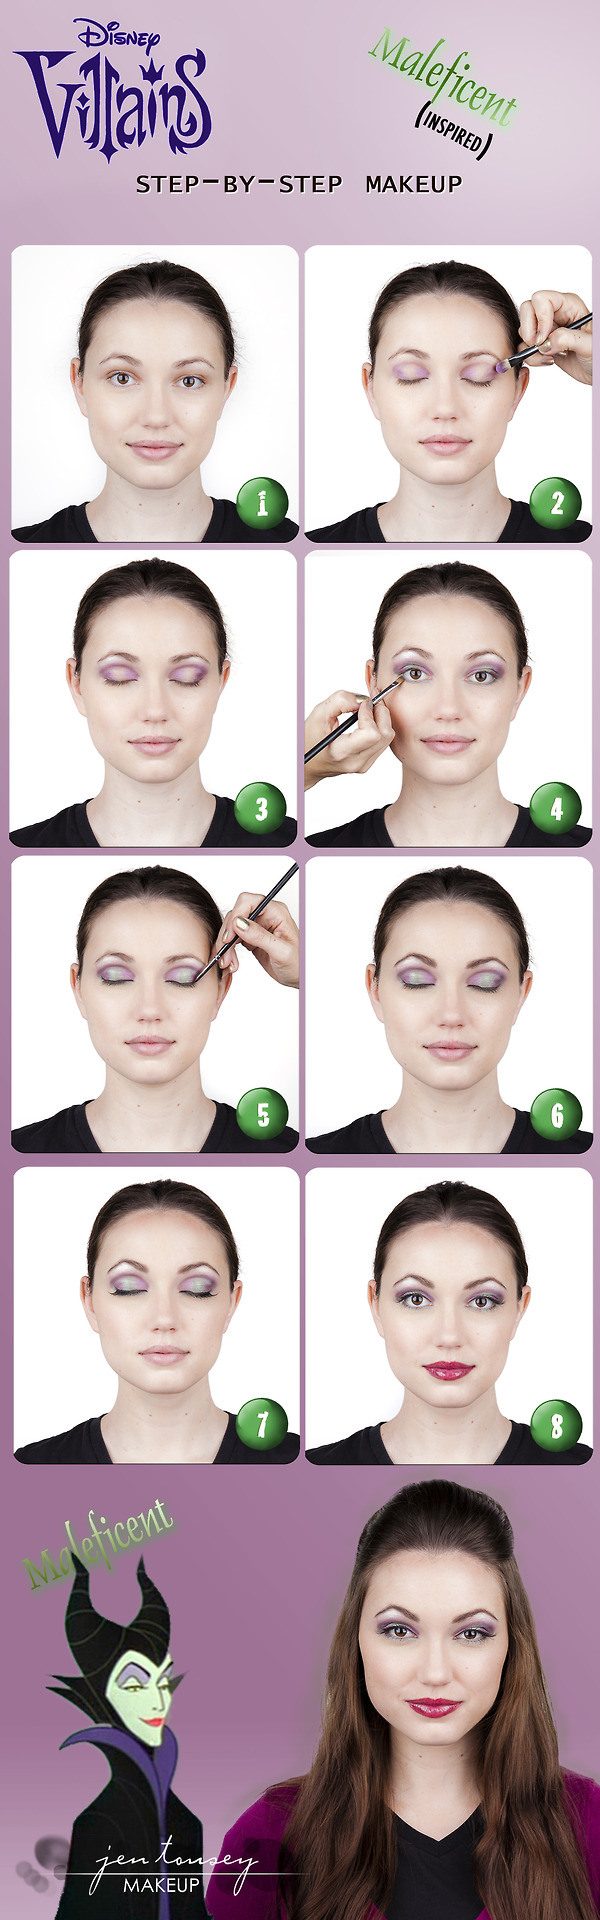 Step by step maleficent makeup tutorial makeup guide pinterest step by step maleficent makeup tutorial baditri Gallery